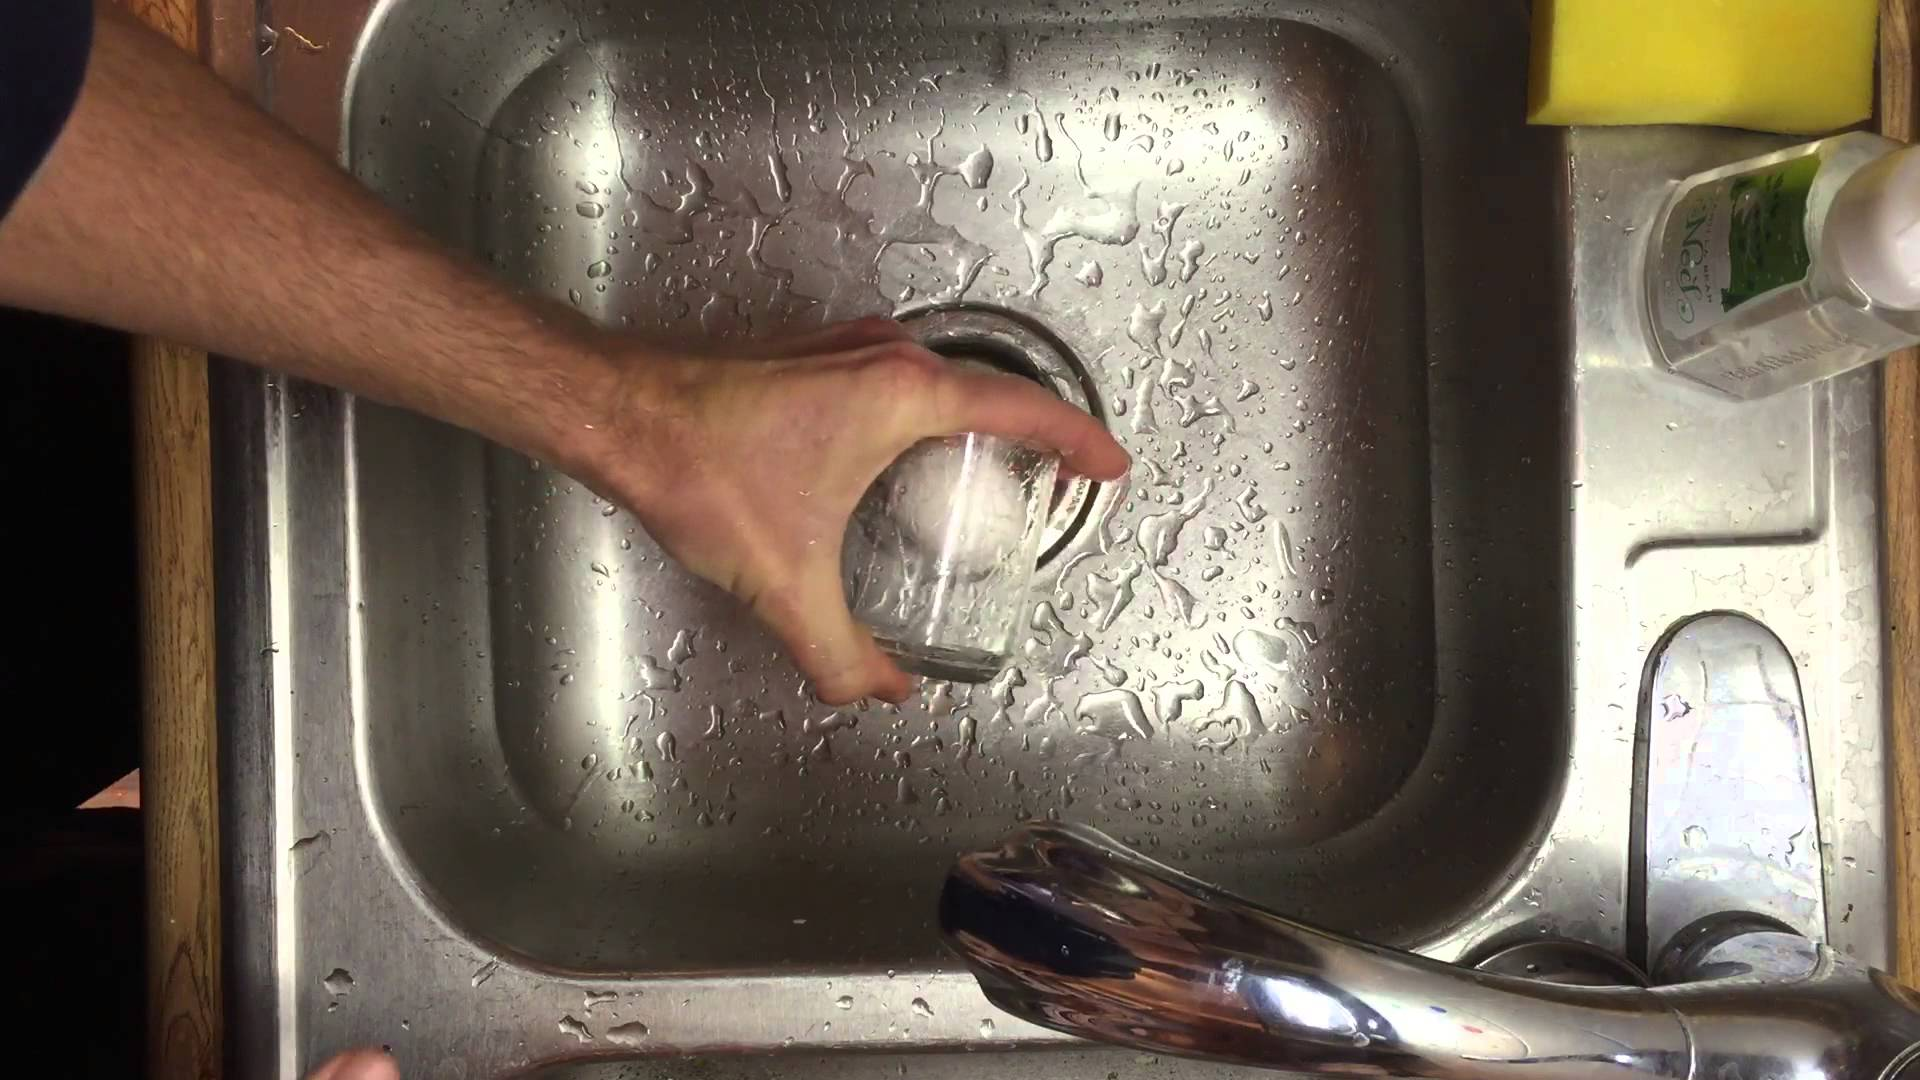 An Extremely Simple Method for Peeling a Hard-Boiled Egg in Seconds Using a Small Glass of Water